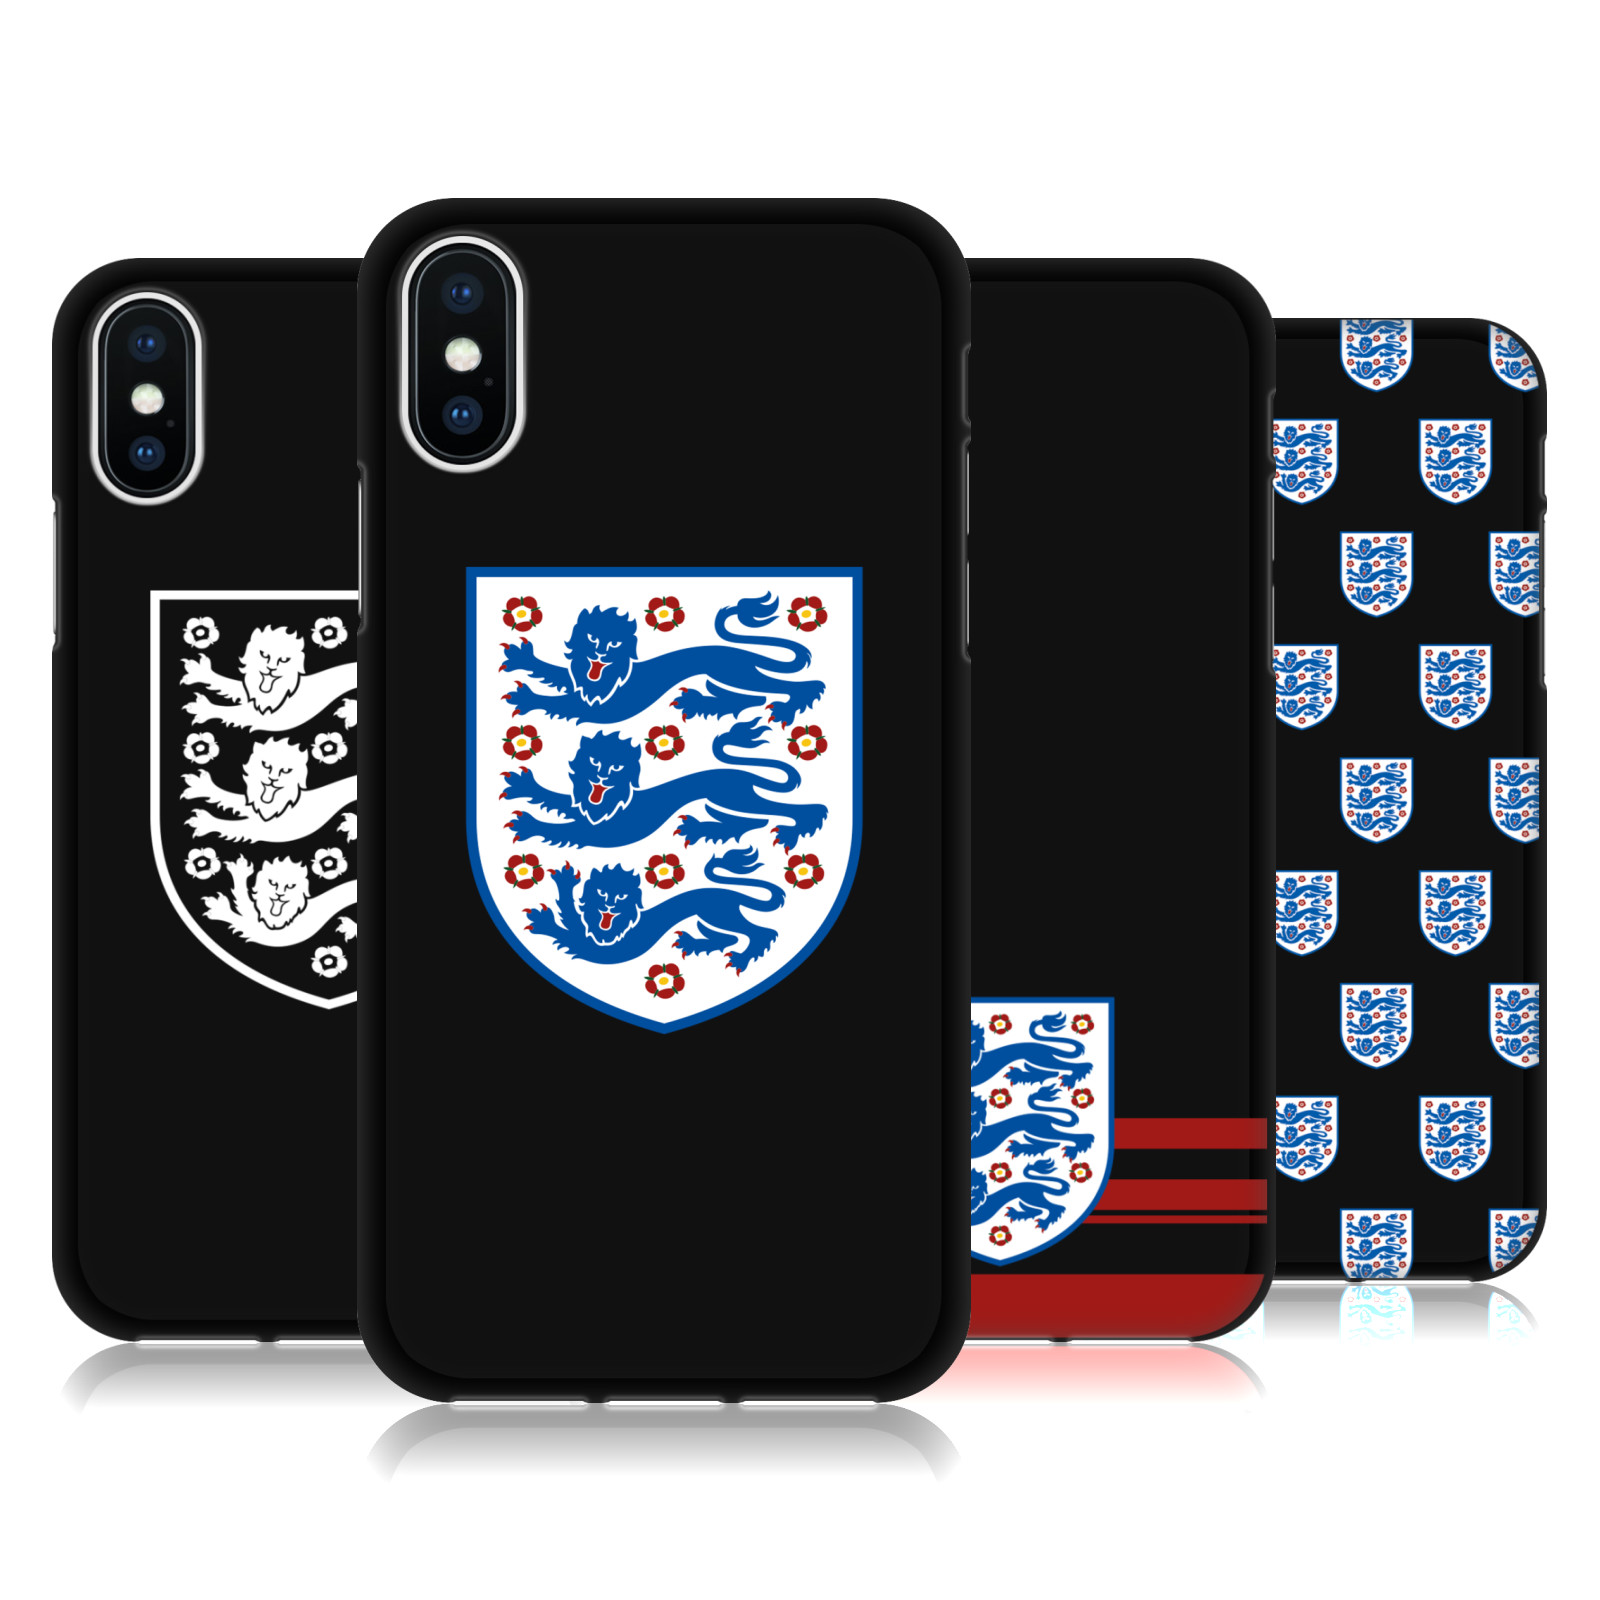 England National Football Team <!--translate-lineup-->2018 Crest 2<!--translate-lineup-->